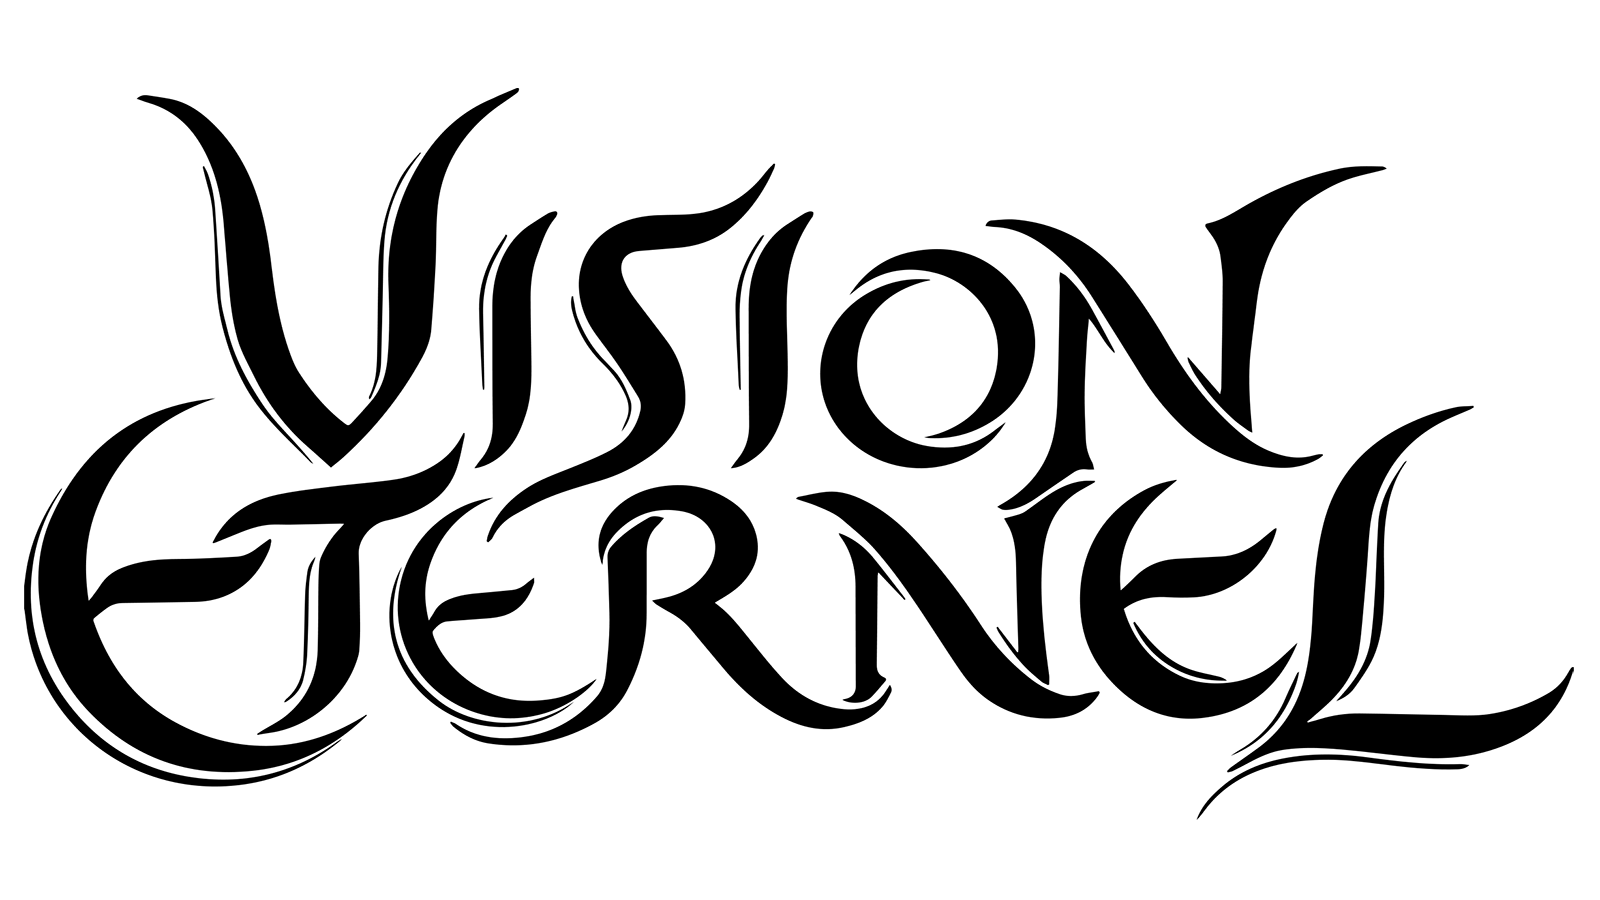 New Vision Éternel Logo Designed By Christophe Szpajdel